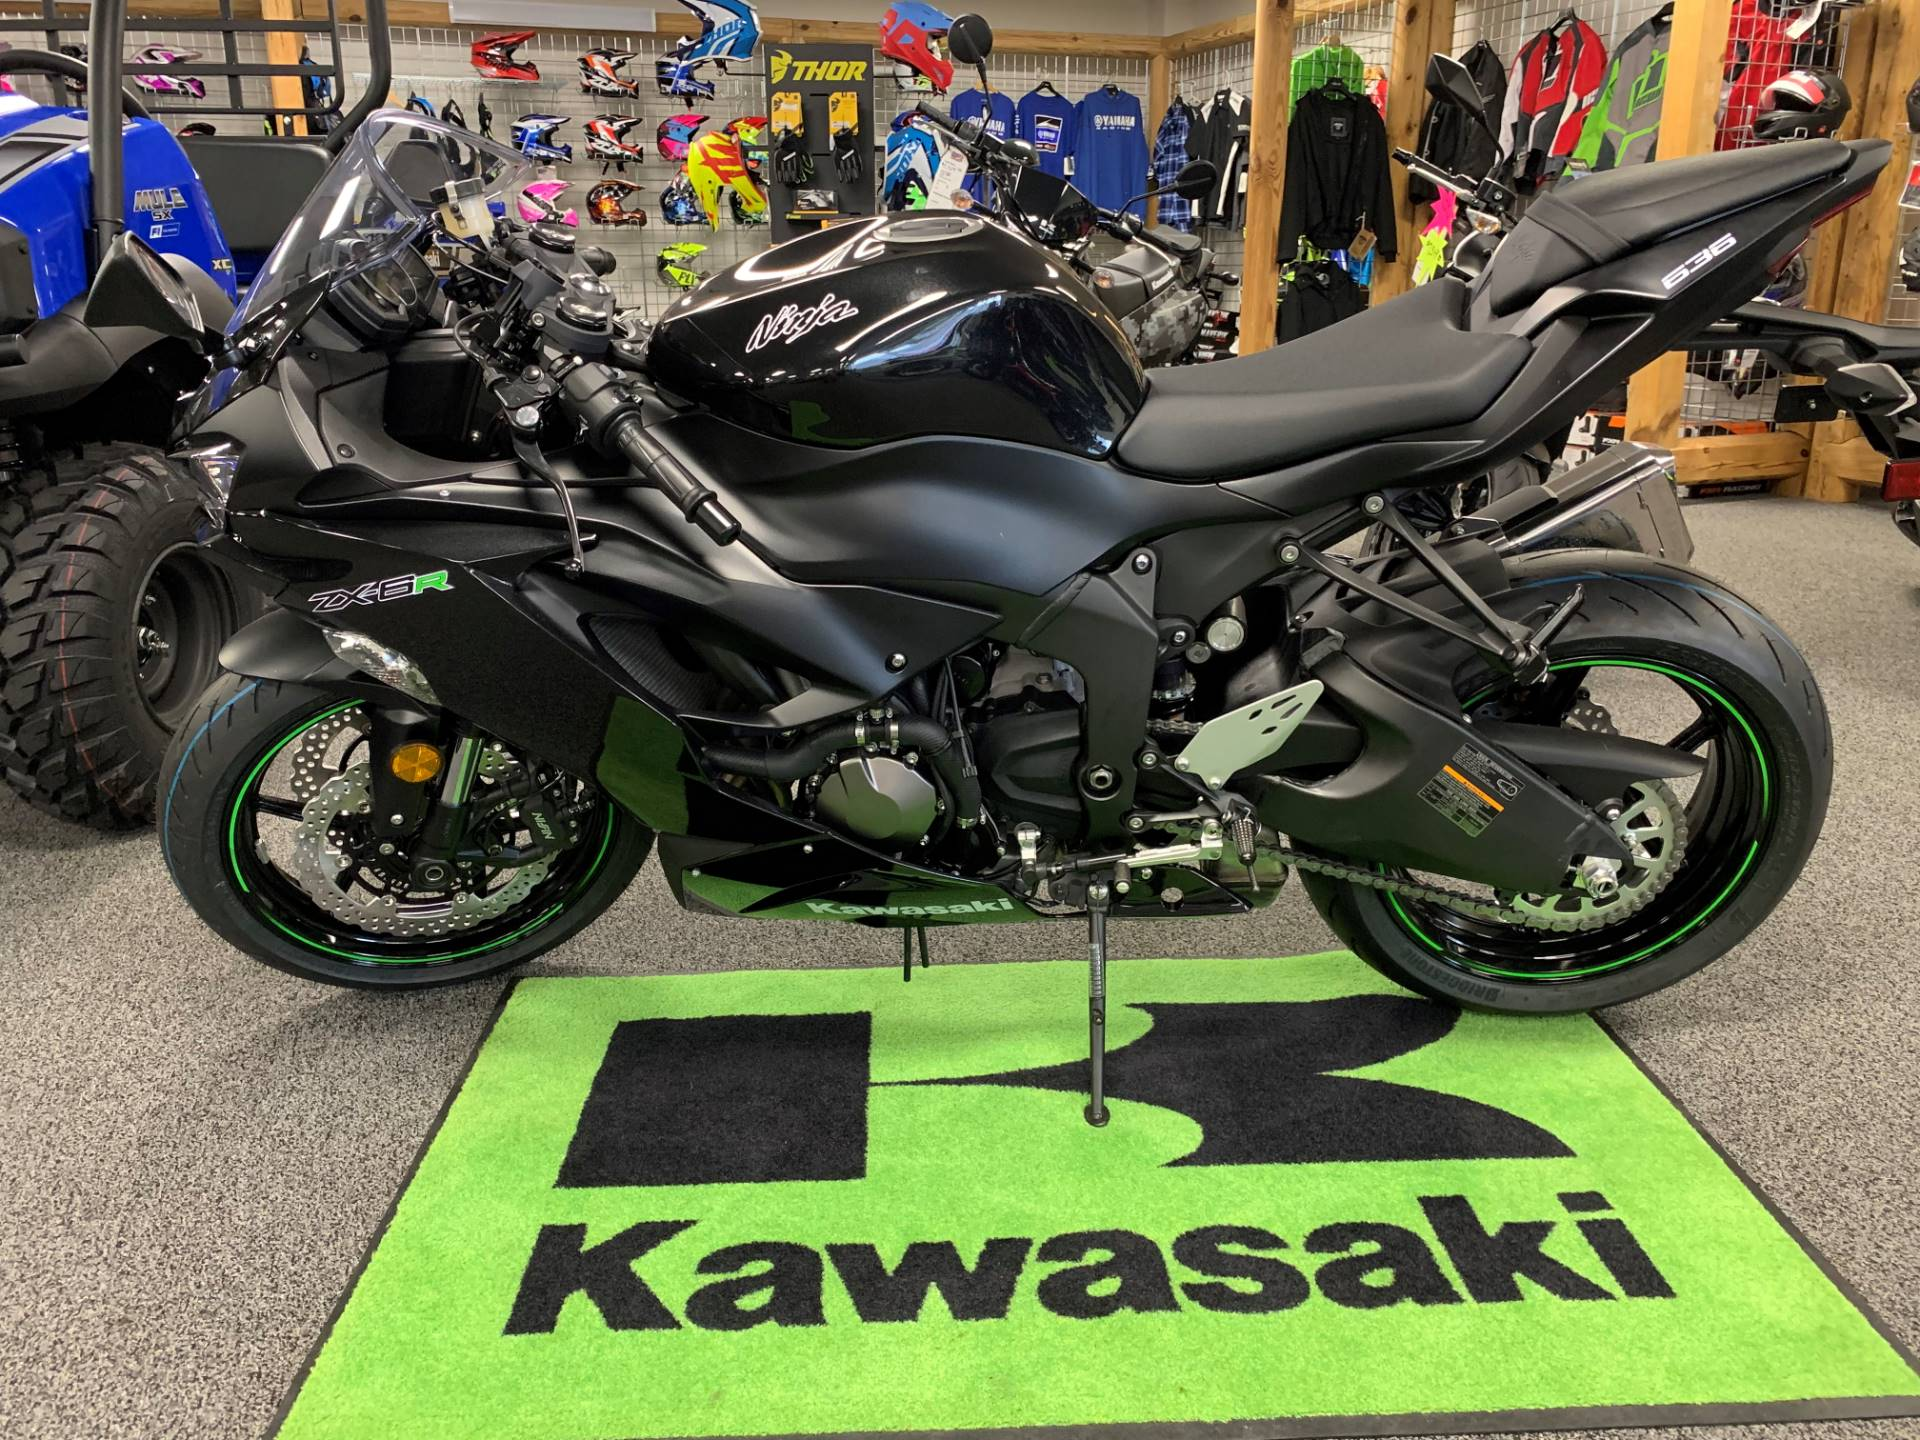 2019 Kawasaki NINJA ZX-6R for sale 7469